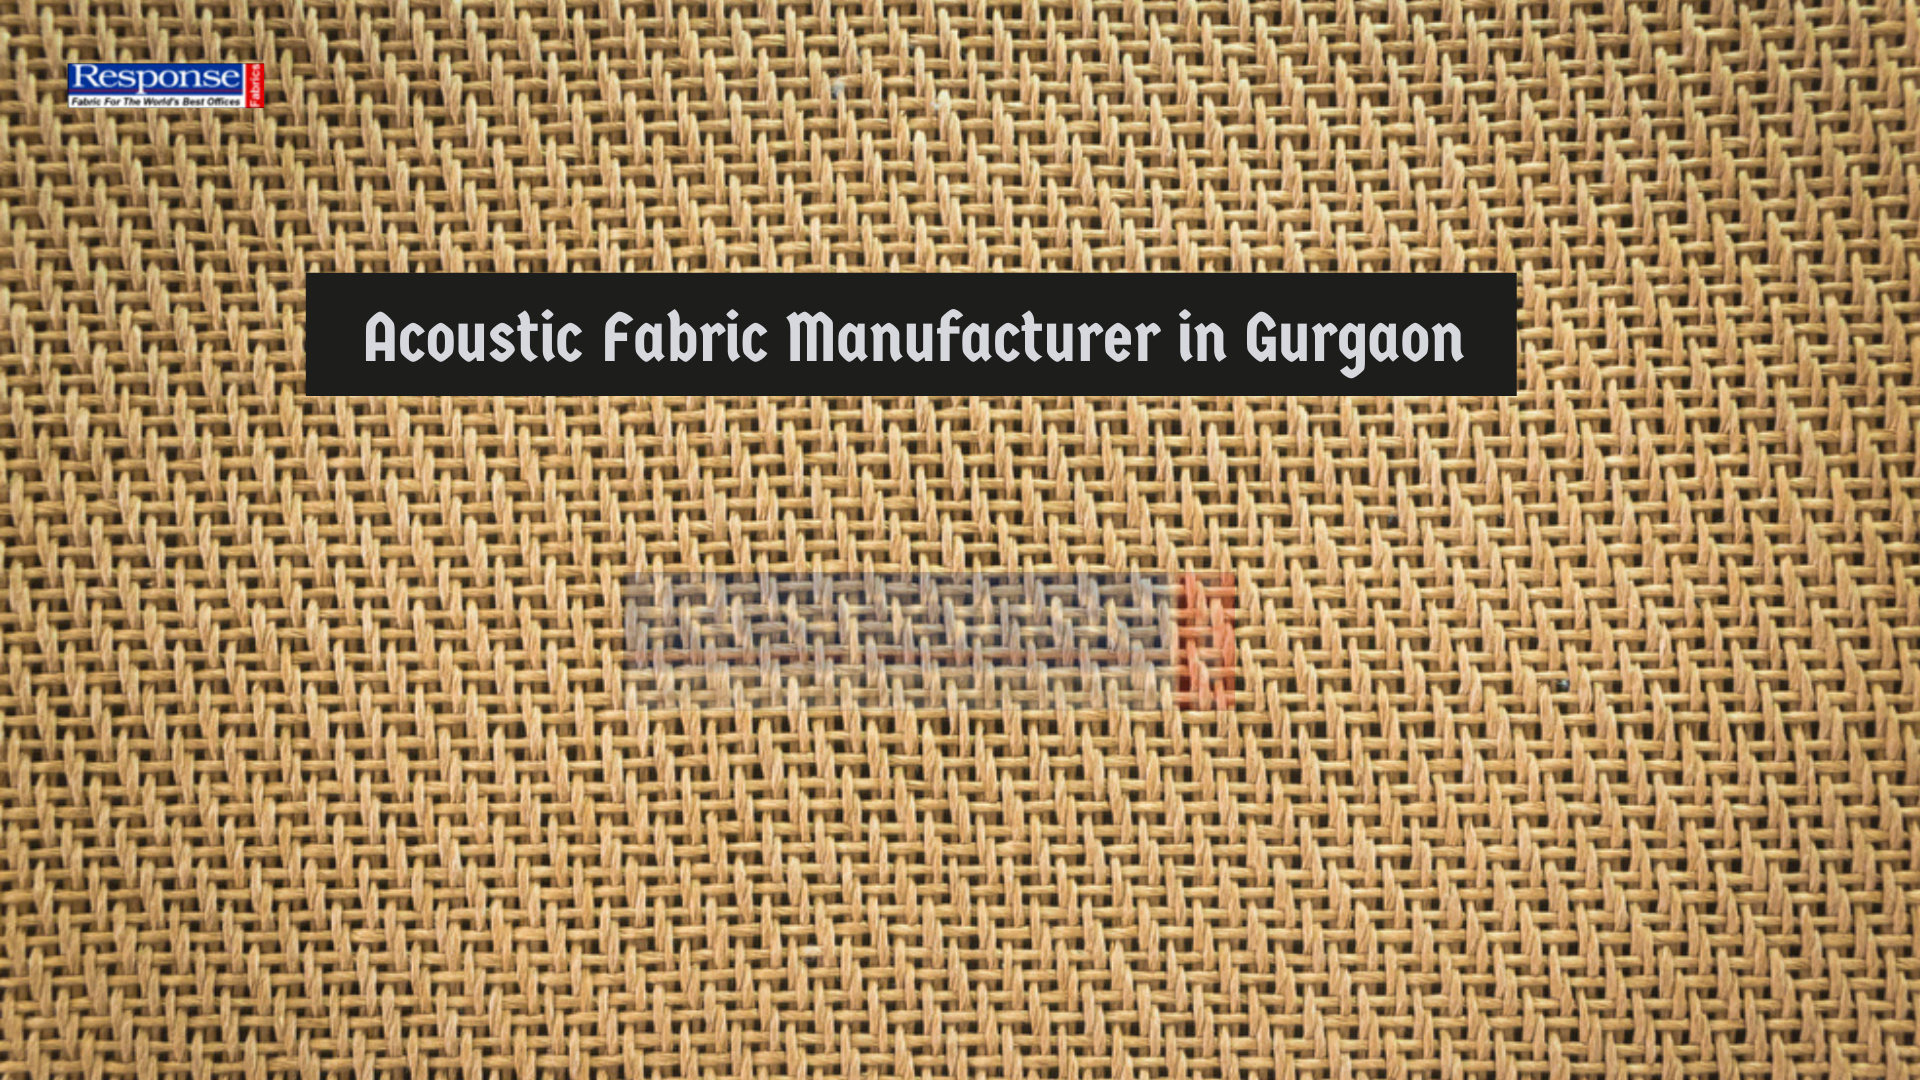 Acoustic Fabric Manufacturer in Gurgaon